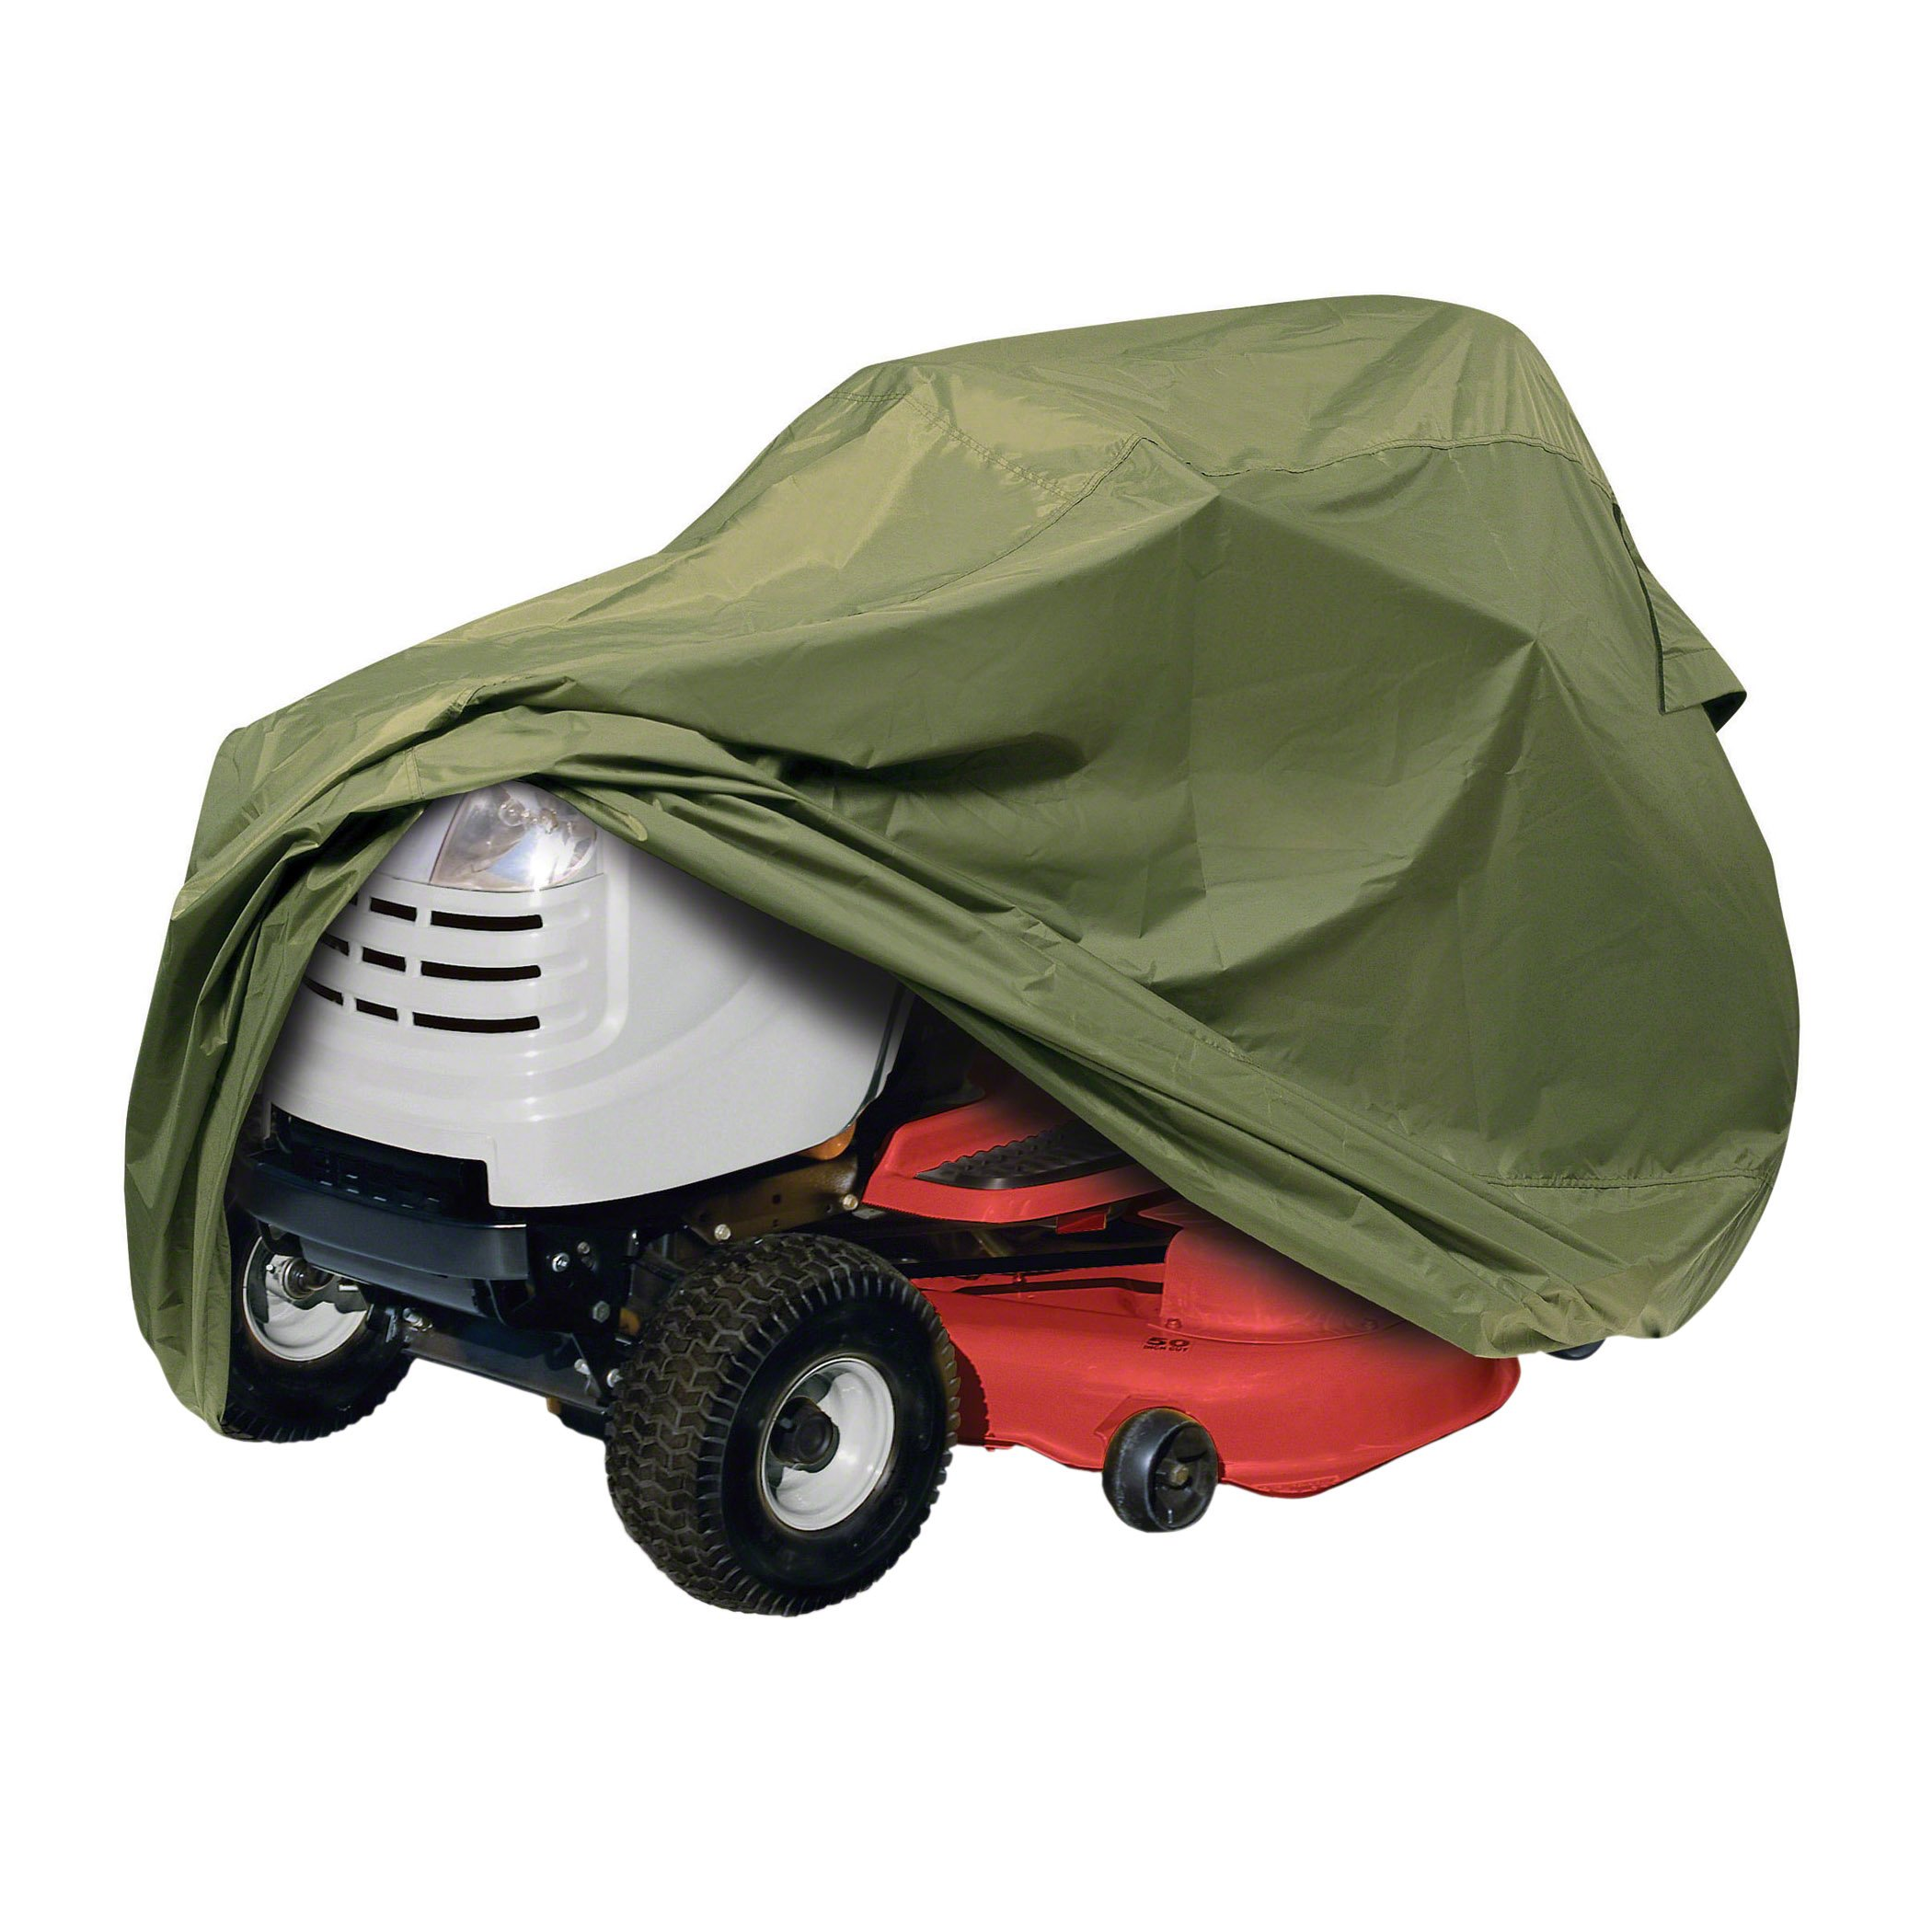 Classic Accessories Lawn Tractor Cover, Olive, Up to 54'' Decks by Classic Accessories